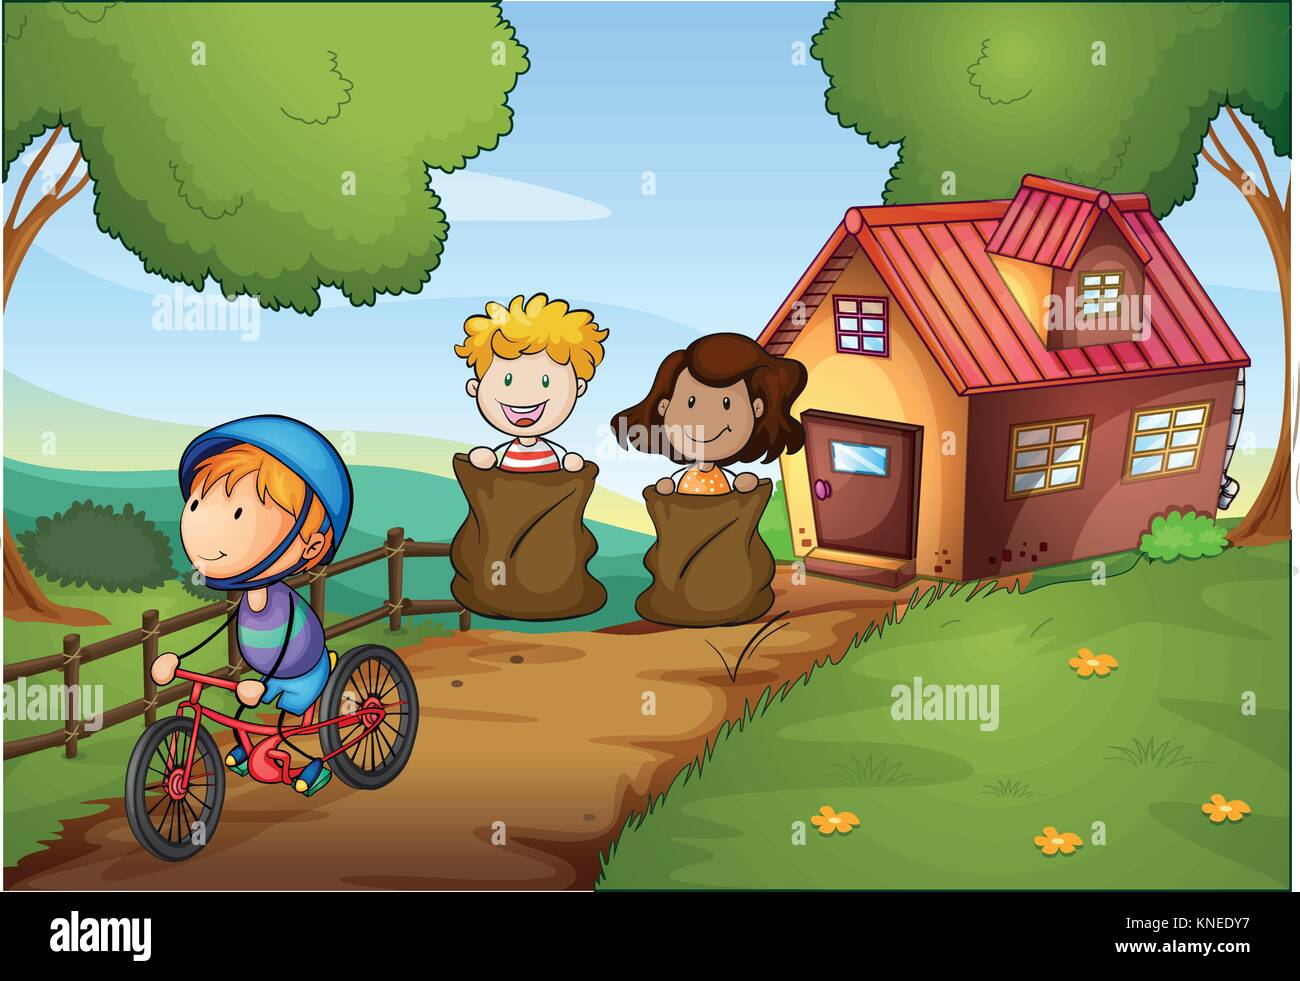 Illustration of a sack race between two young girls and a boy riding a bike - Stock Vector